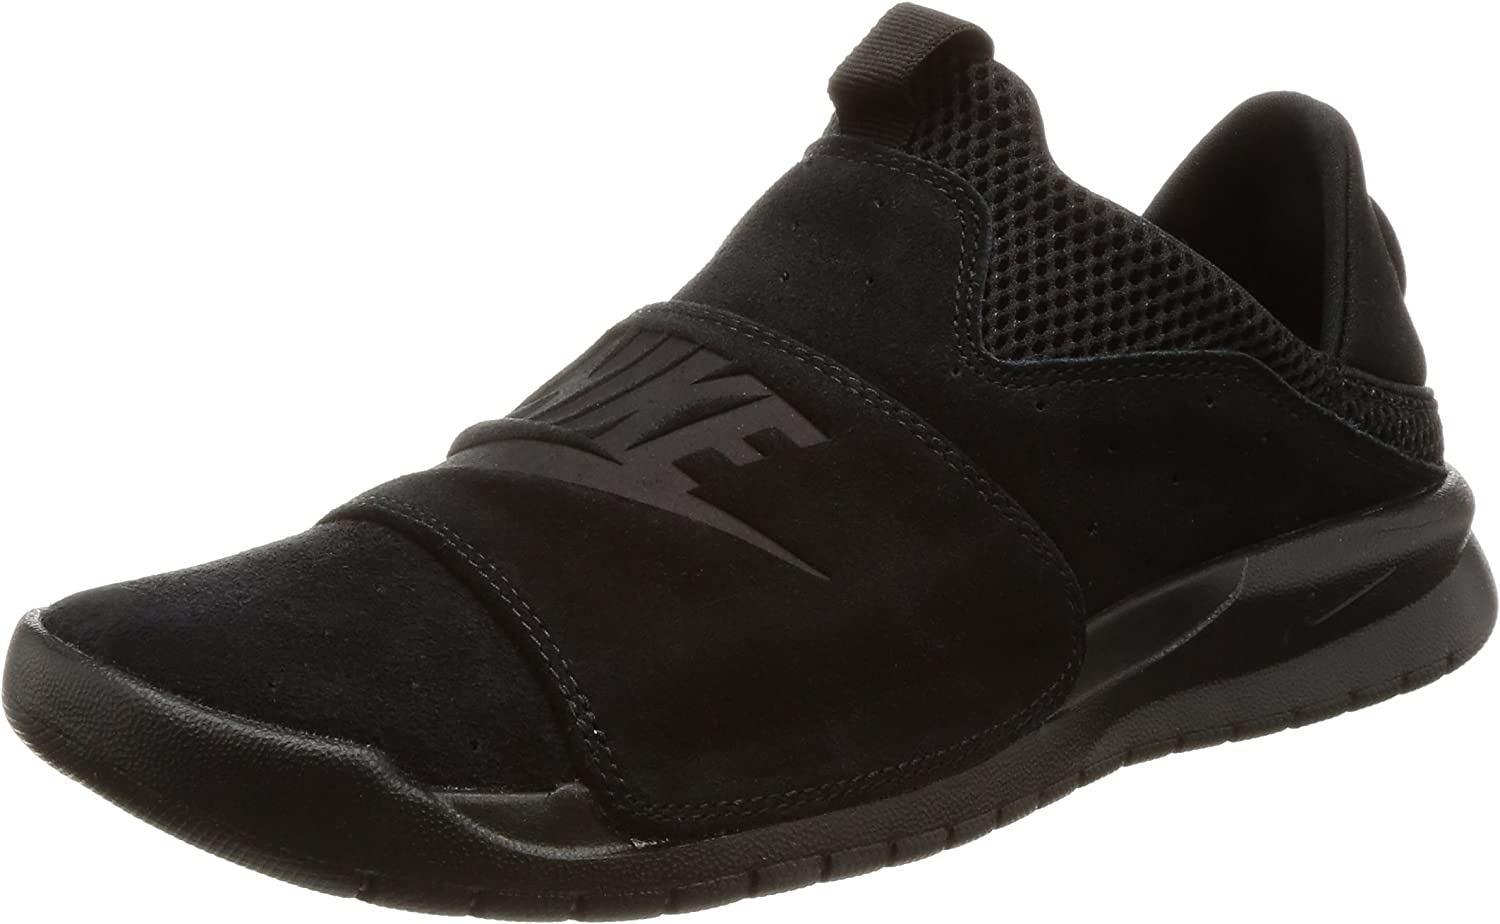 Nike Benassi SLP Mens Fashion-Sneakers 882410-003_10 - Black Black-Black, 9 UK